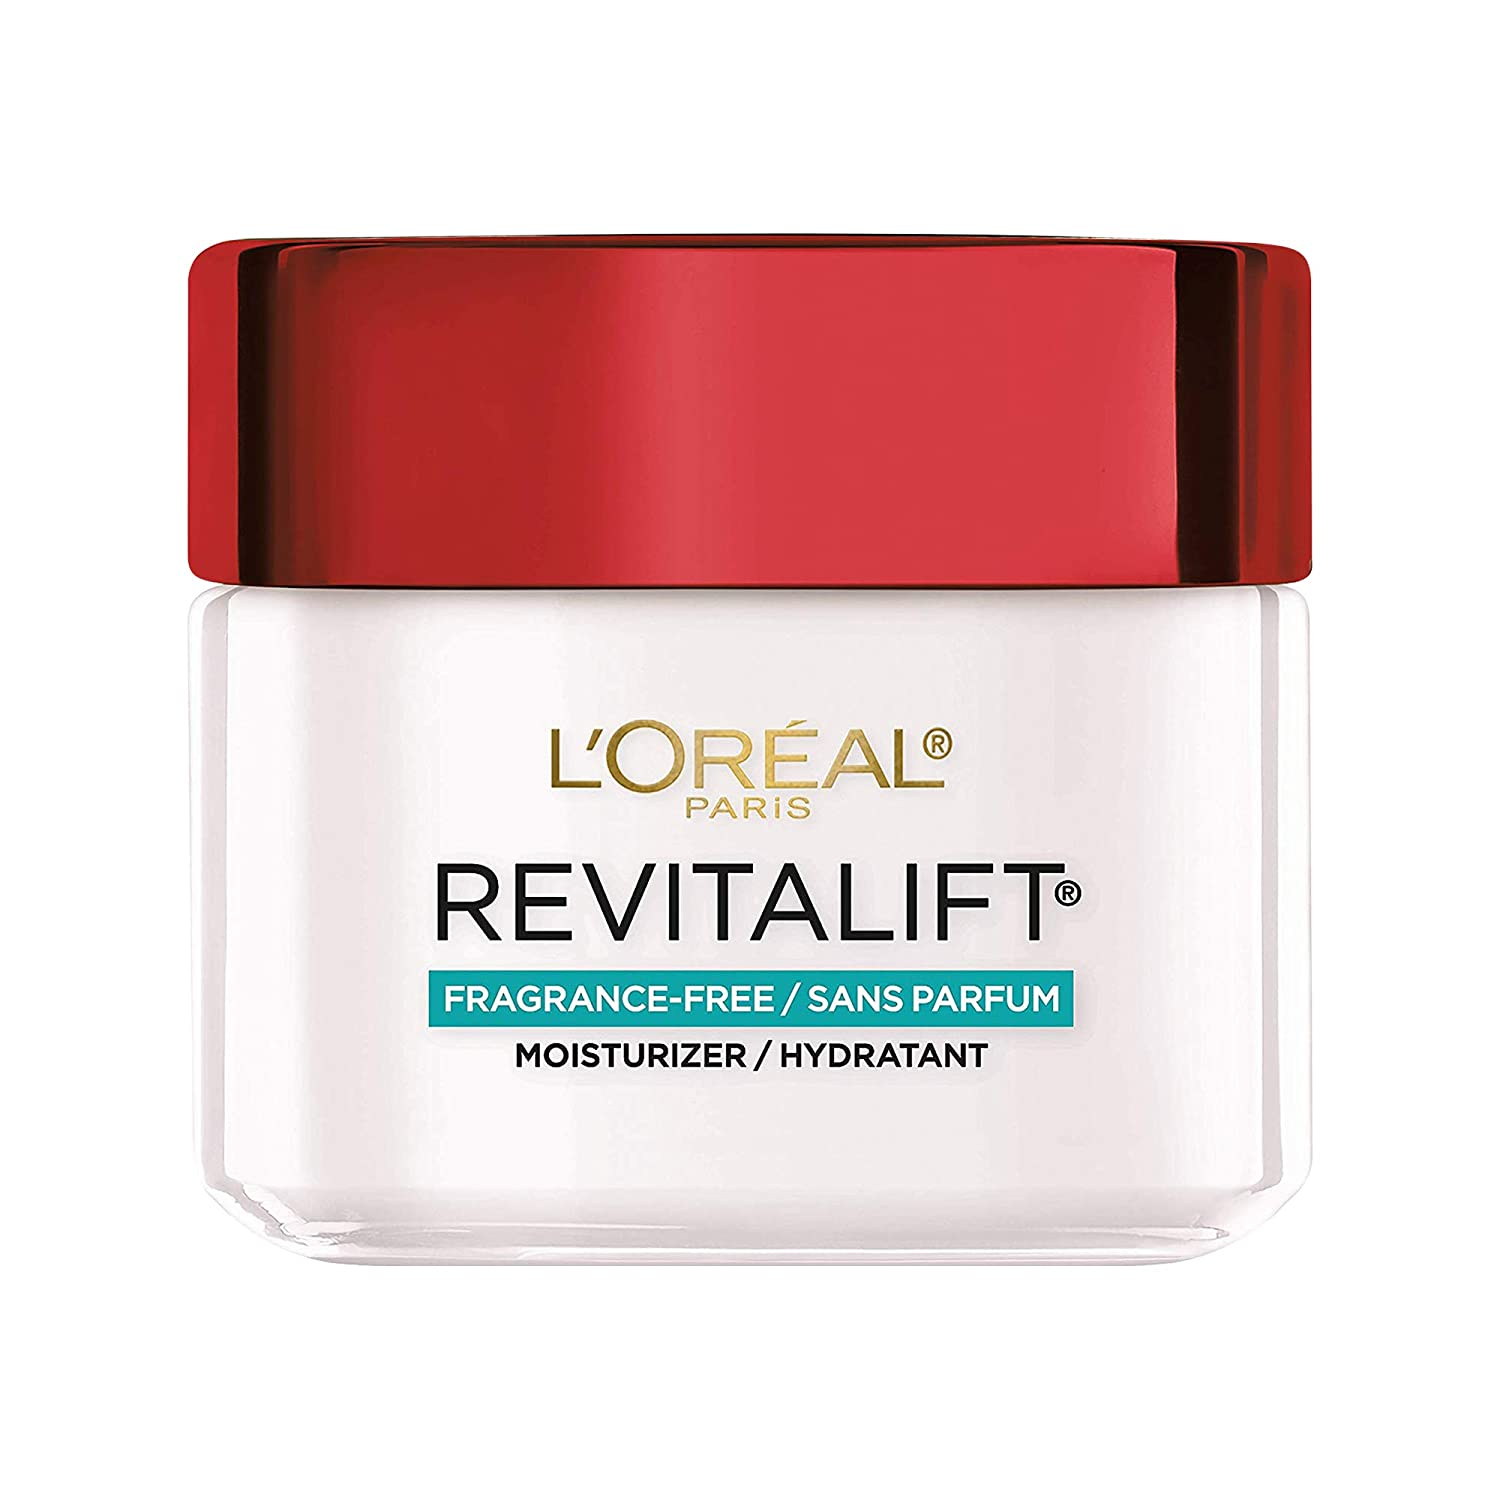 Today's only L'Oreal Paris Skincare Revitalift Anti-Aging and Neck Moist Face overseas